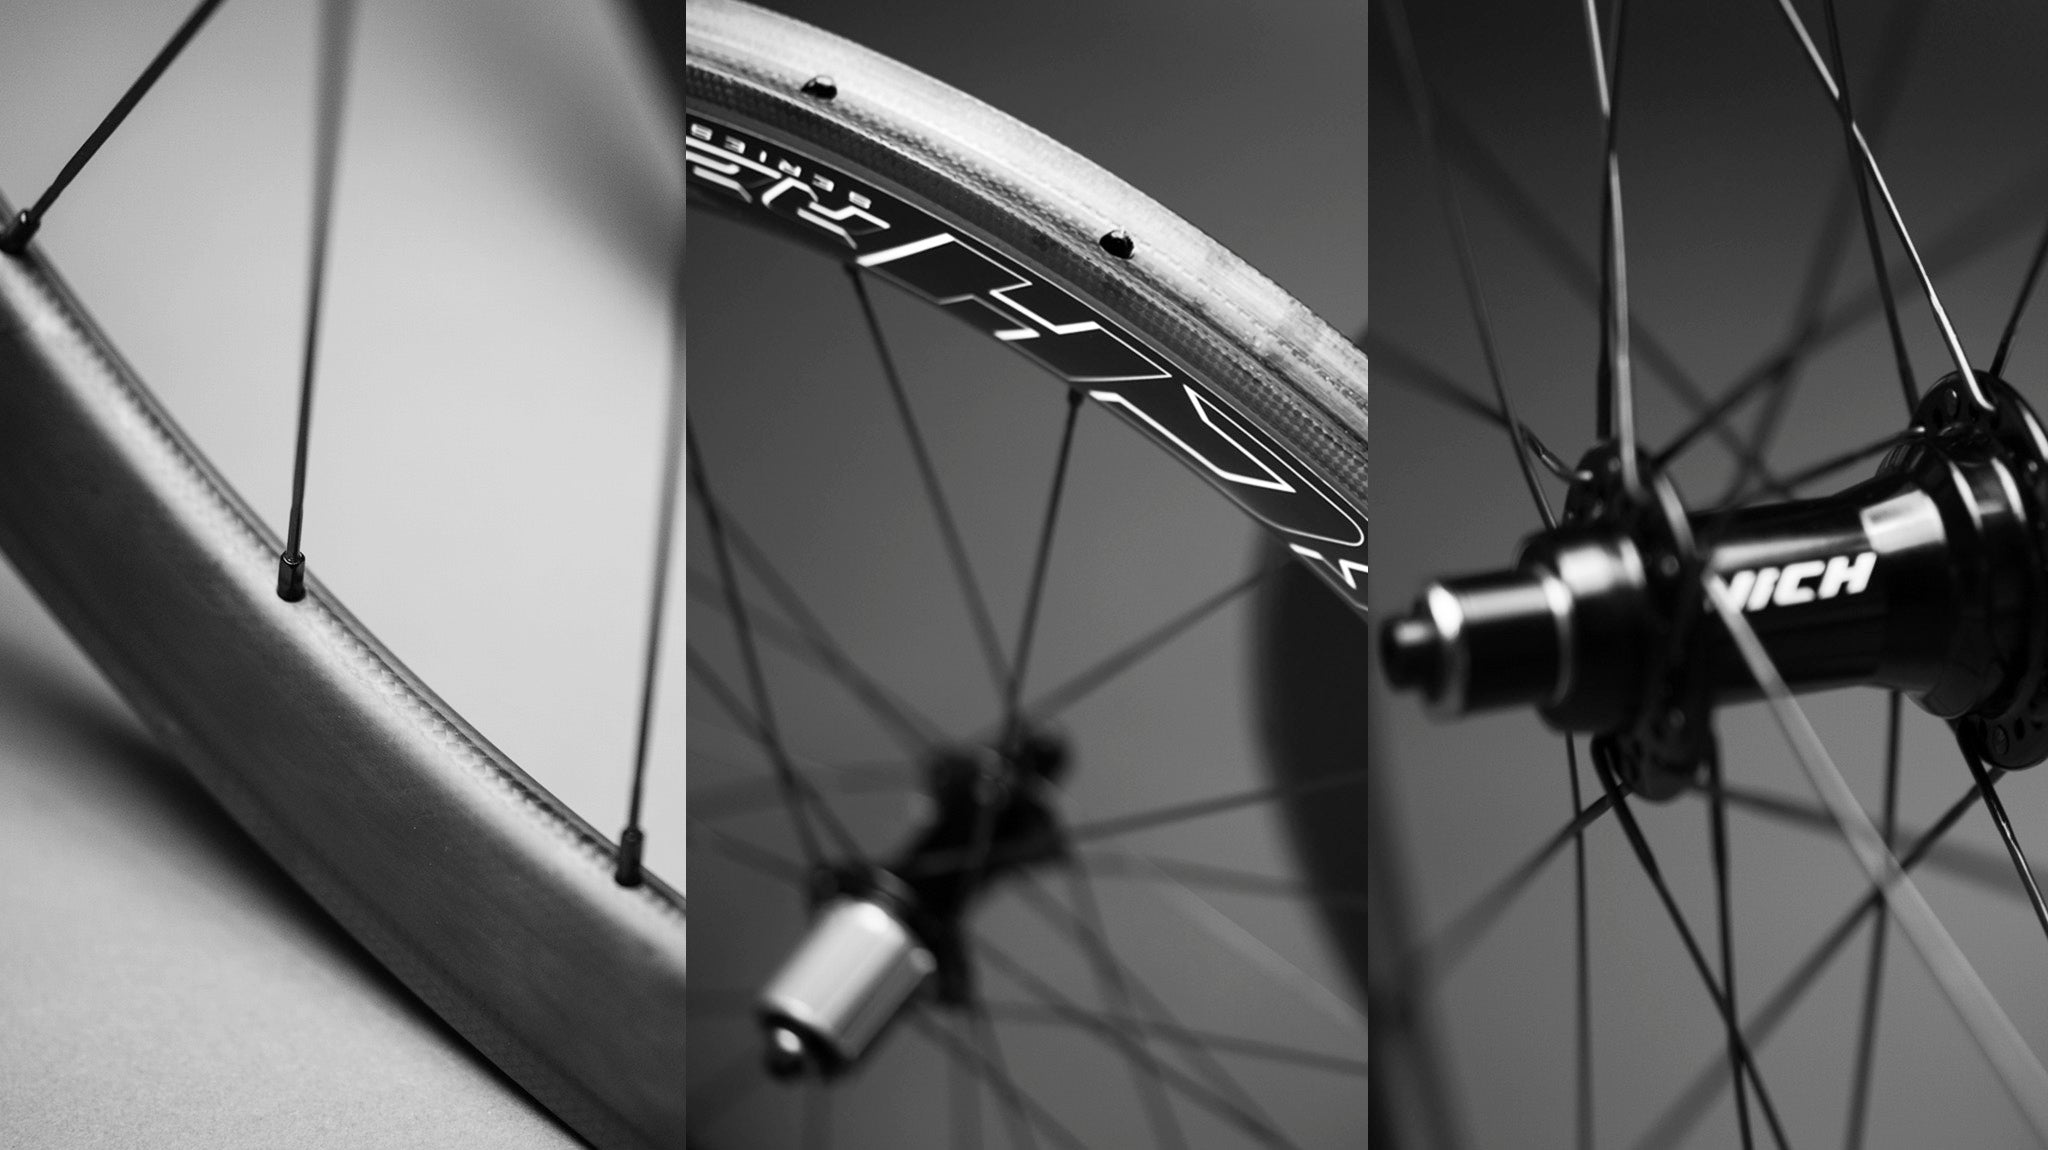 NICH Carbon wheelset Atem2 tubular profile